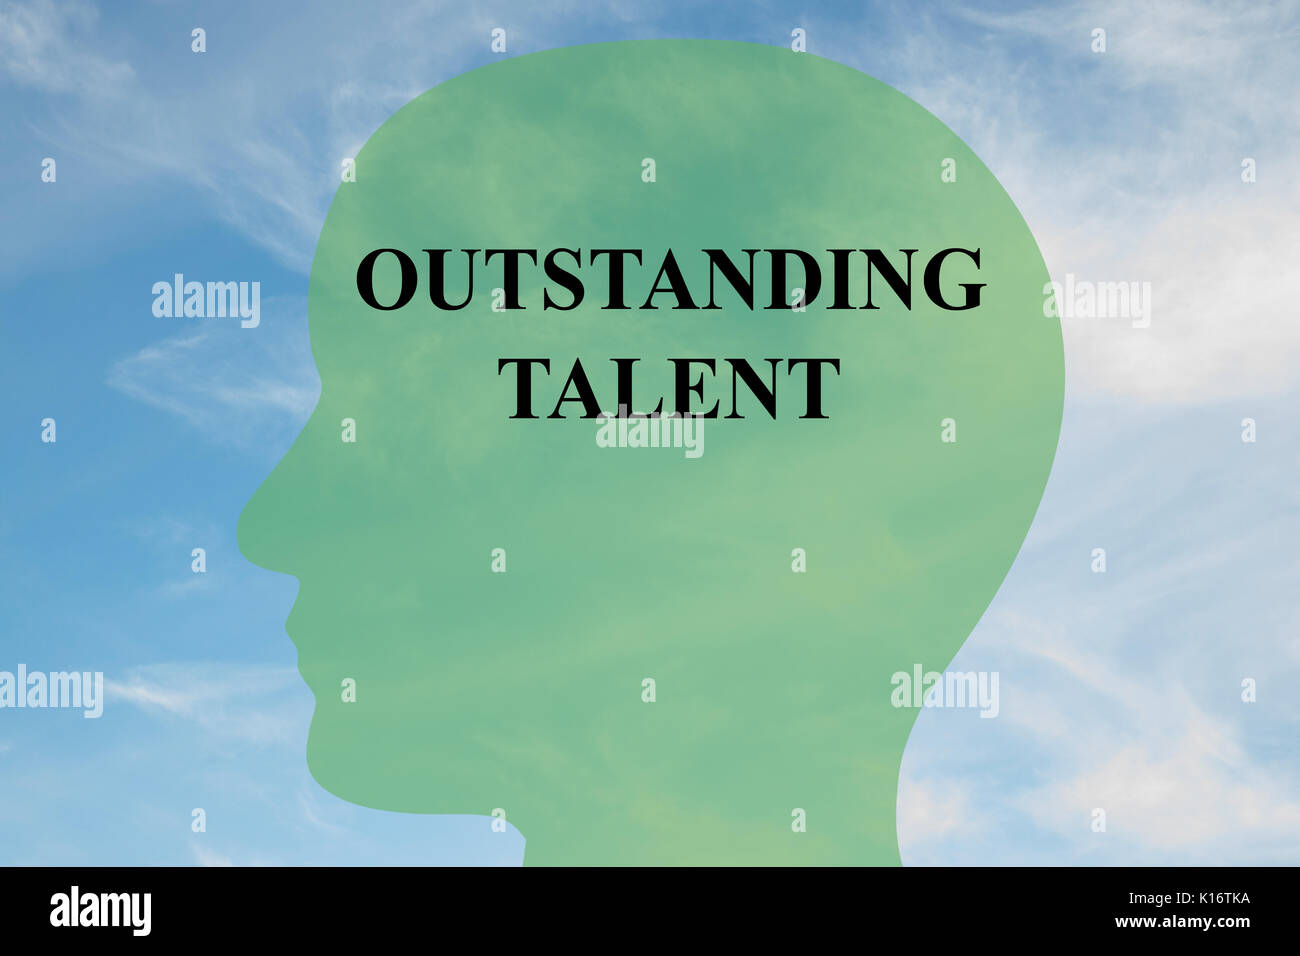 Render illustration of 'OUTSTANDING TALENT' script on head silhouette, with cloudy sky as a background. - Stock Image